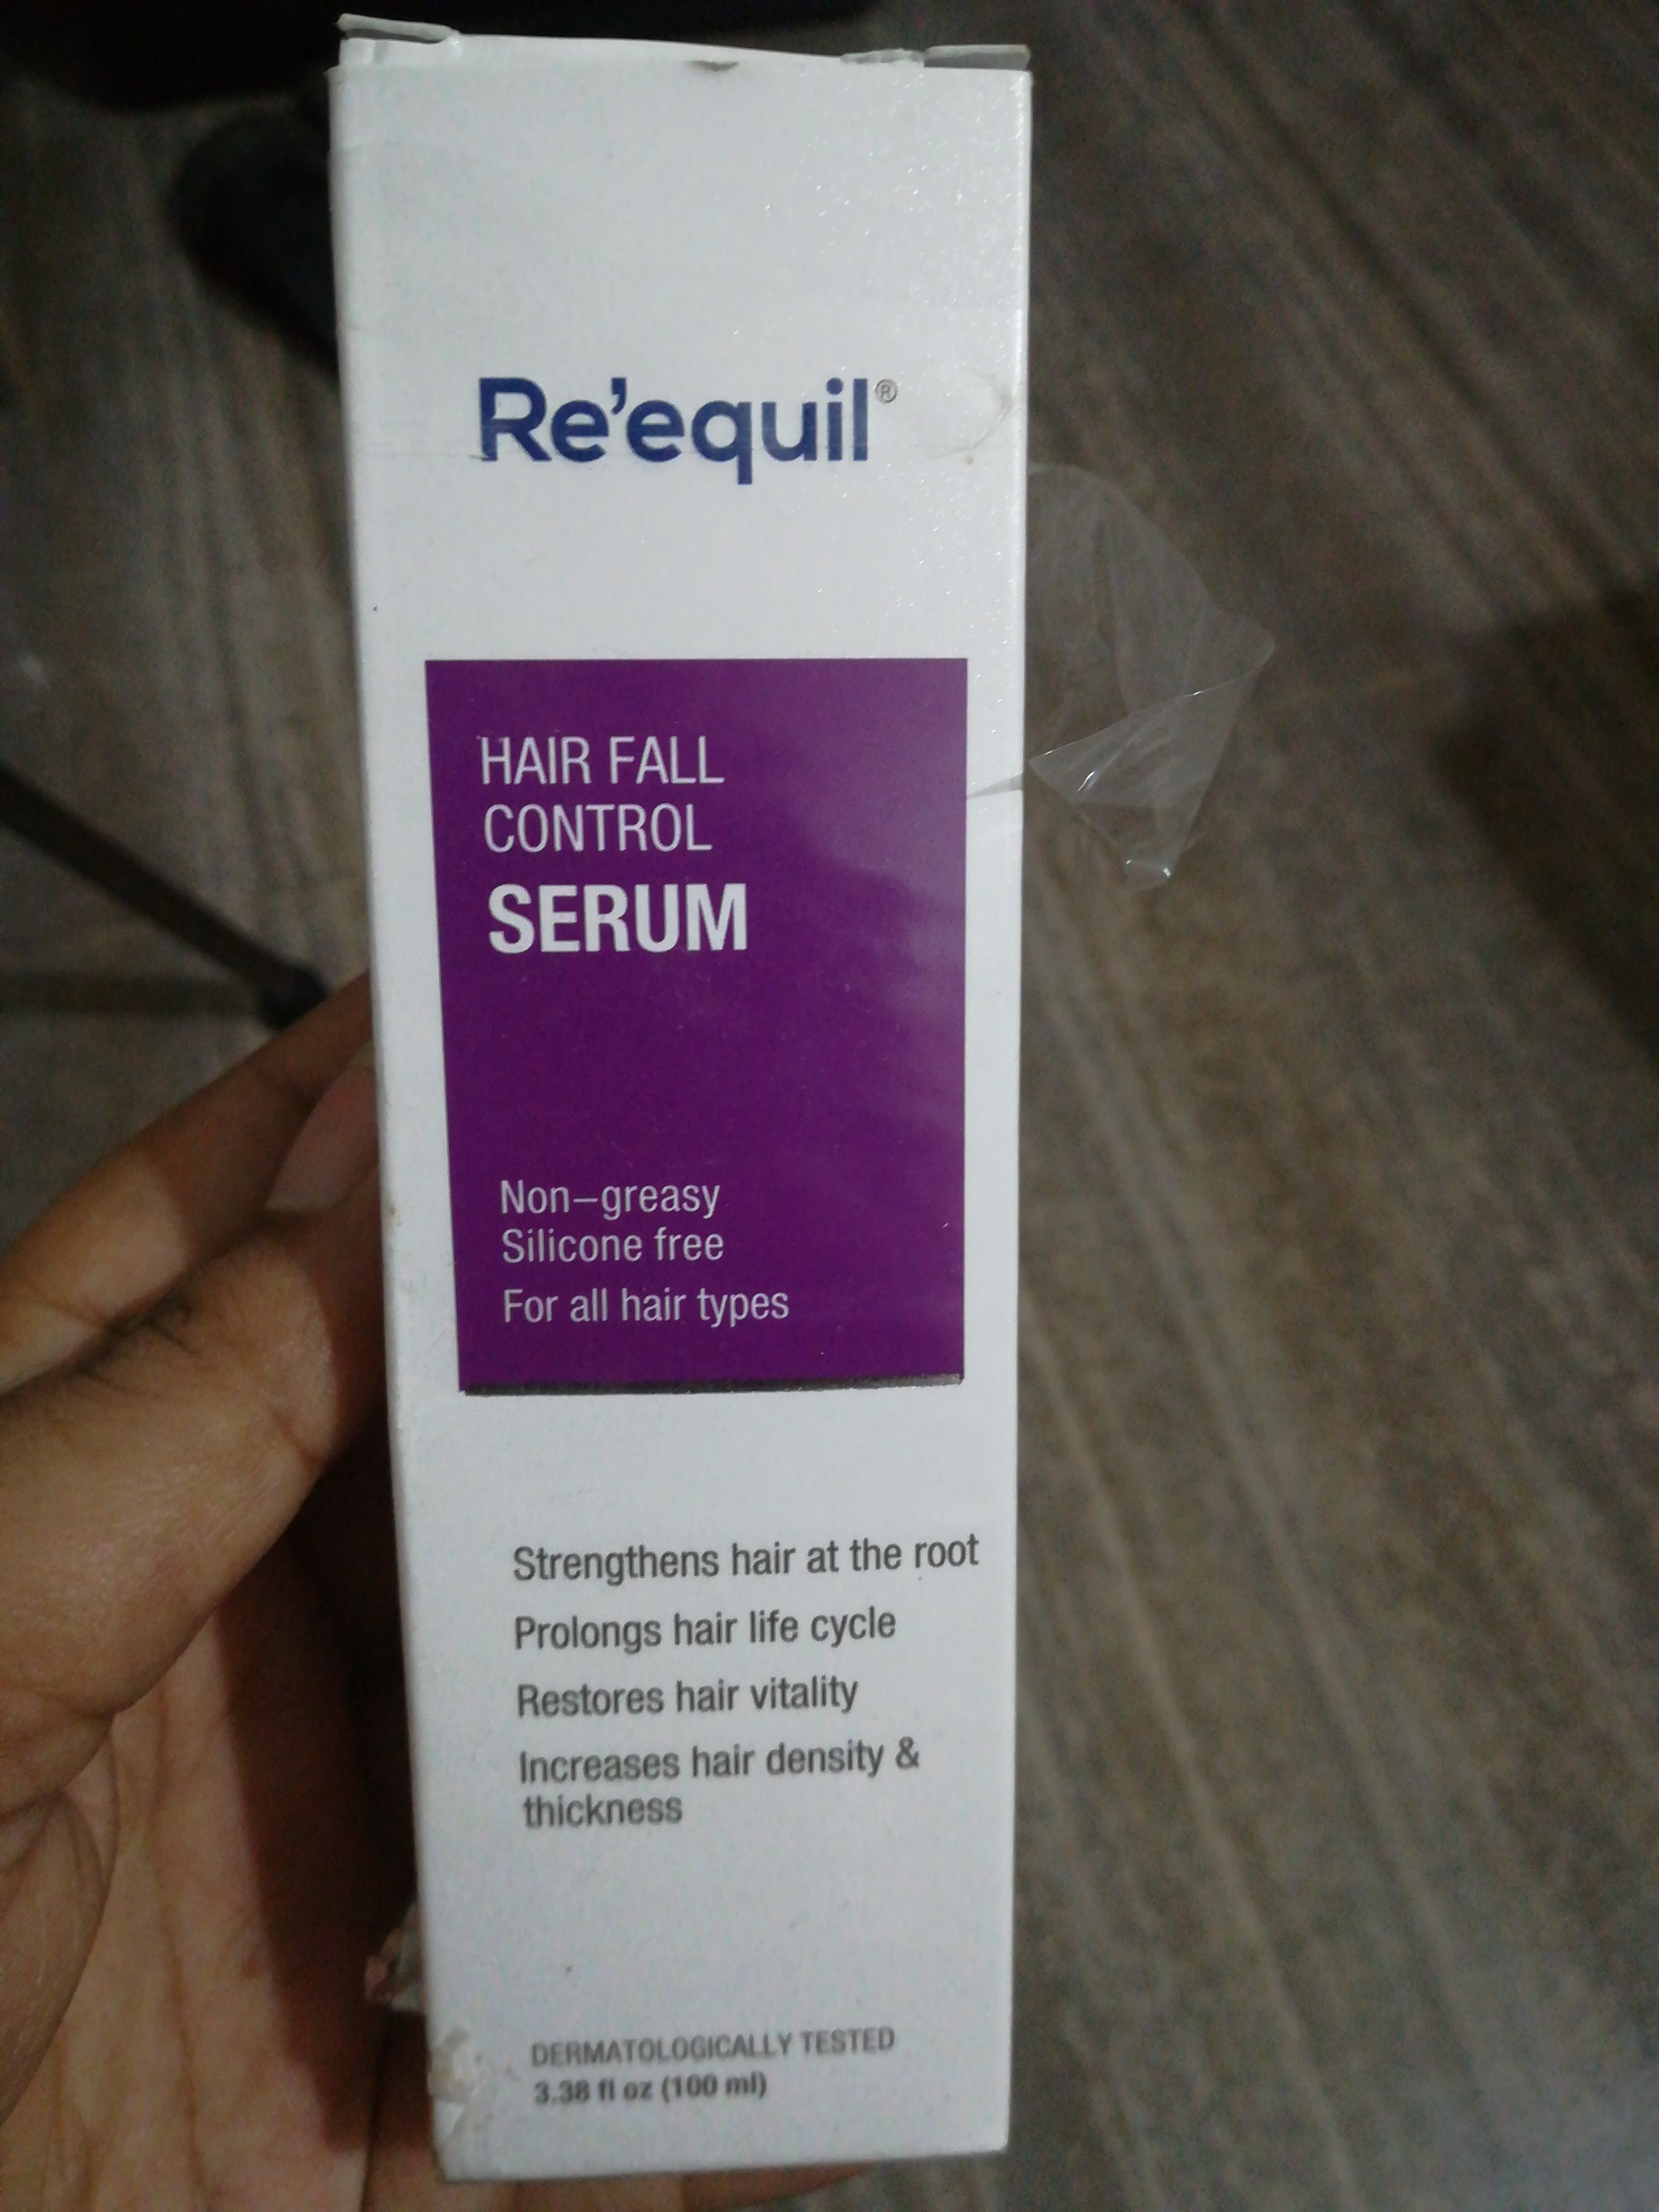 Re'equil Hair Fall Control Serum-Best serum for all hair types-By vaishnavi11